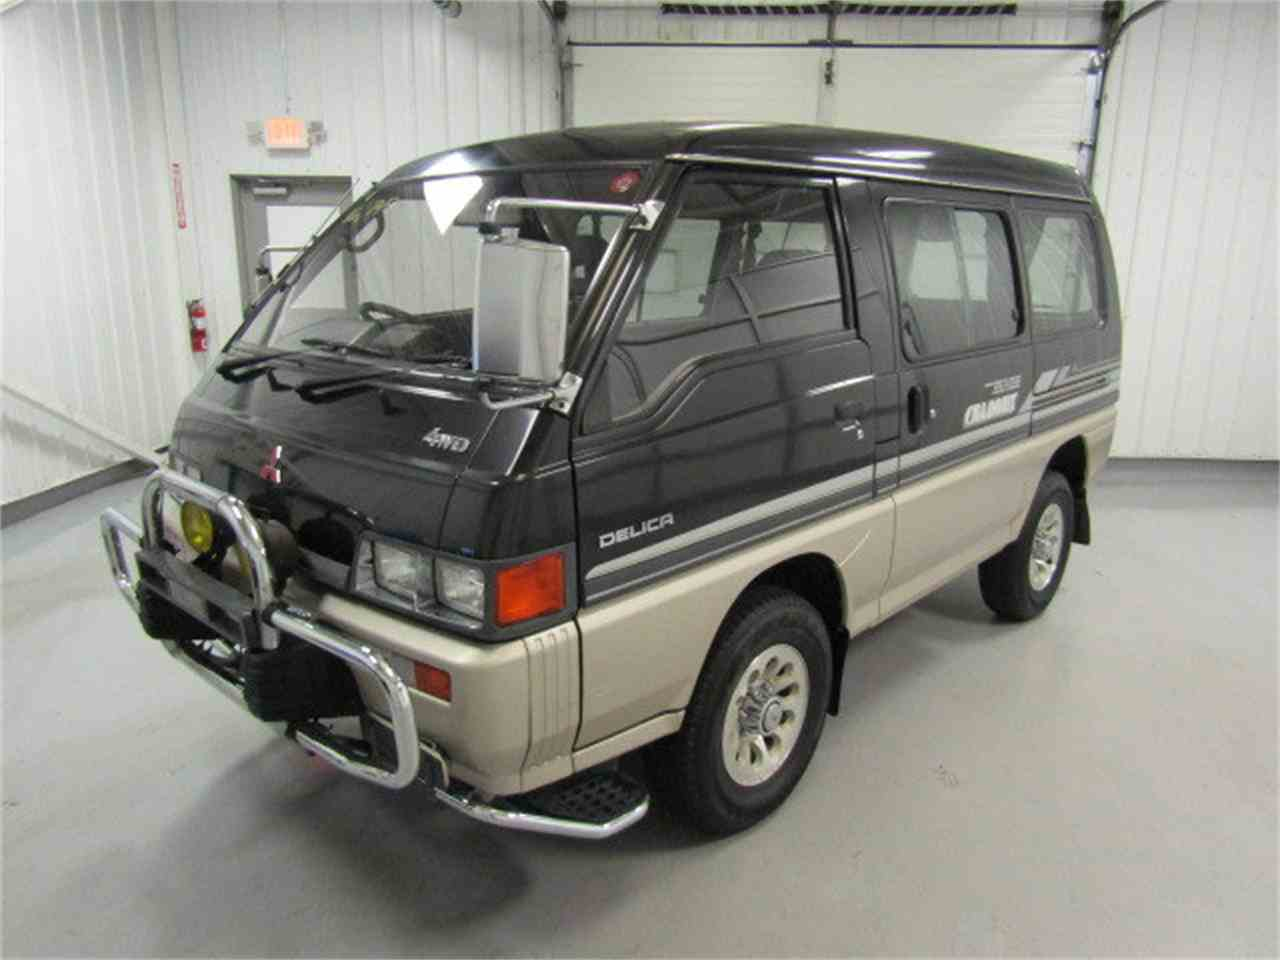 Large Picture of '89 Delica - $16,749.00 Offered by Duncan Imports & Classic Cars - LRIN